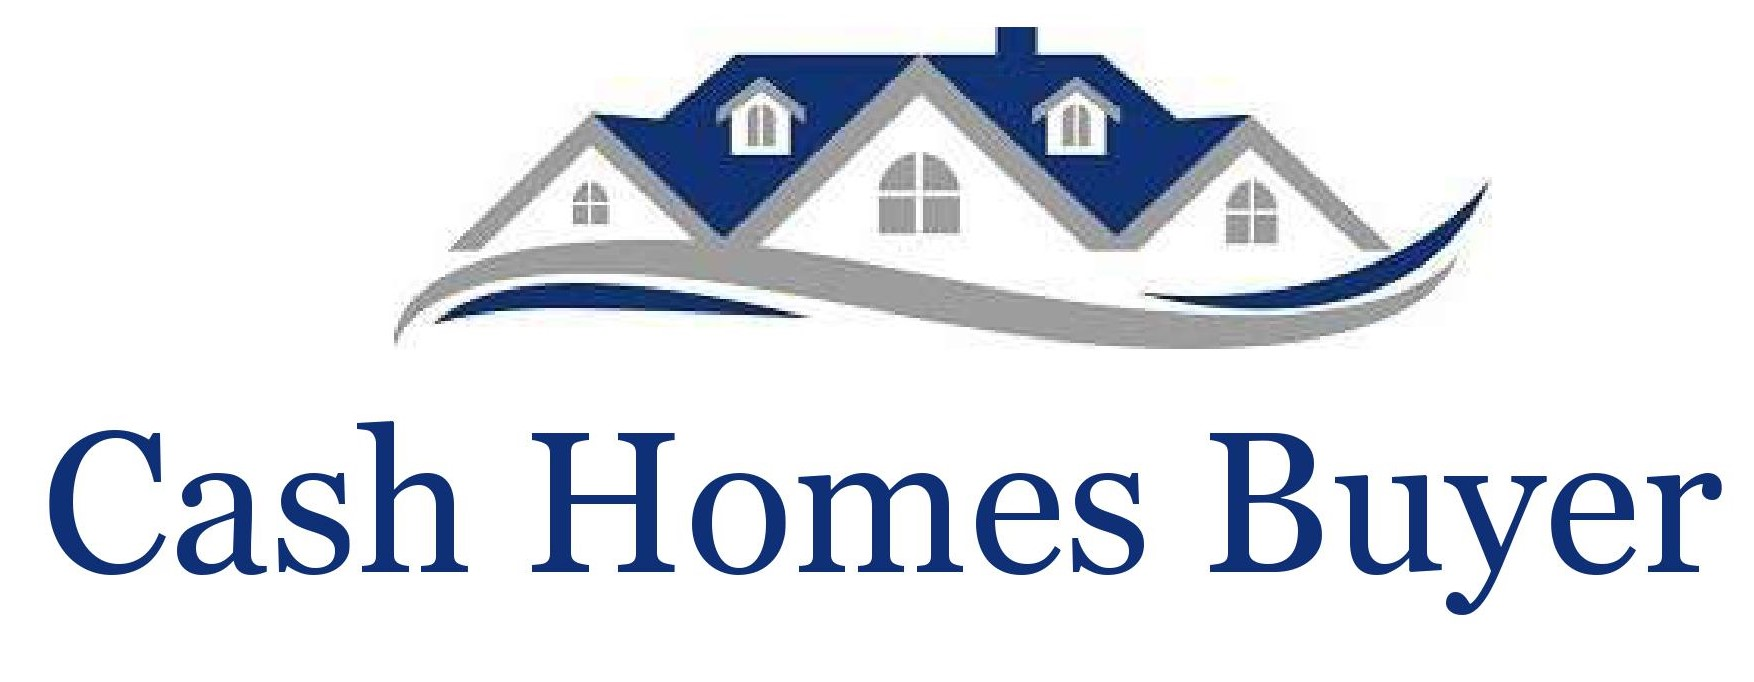 Cash Homes Buyer